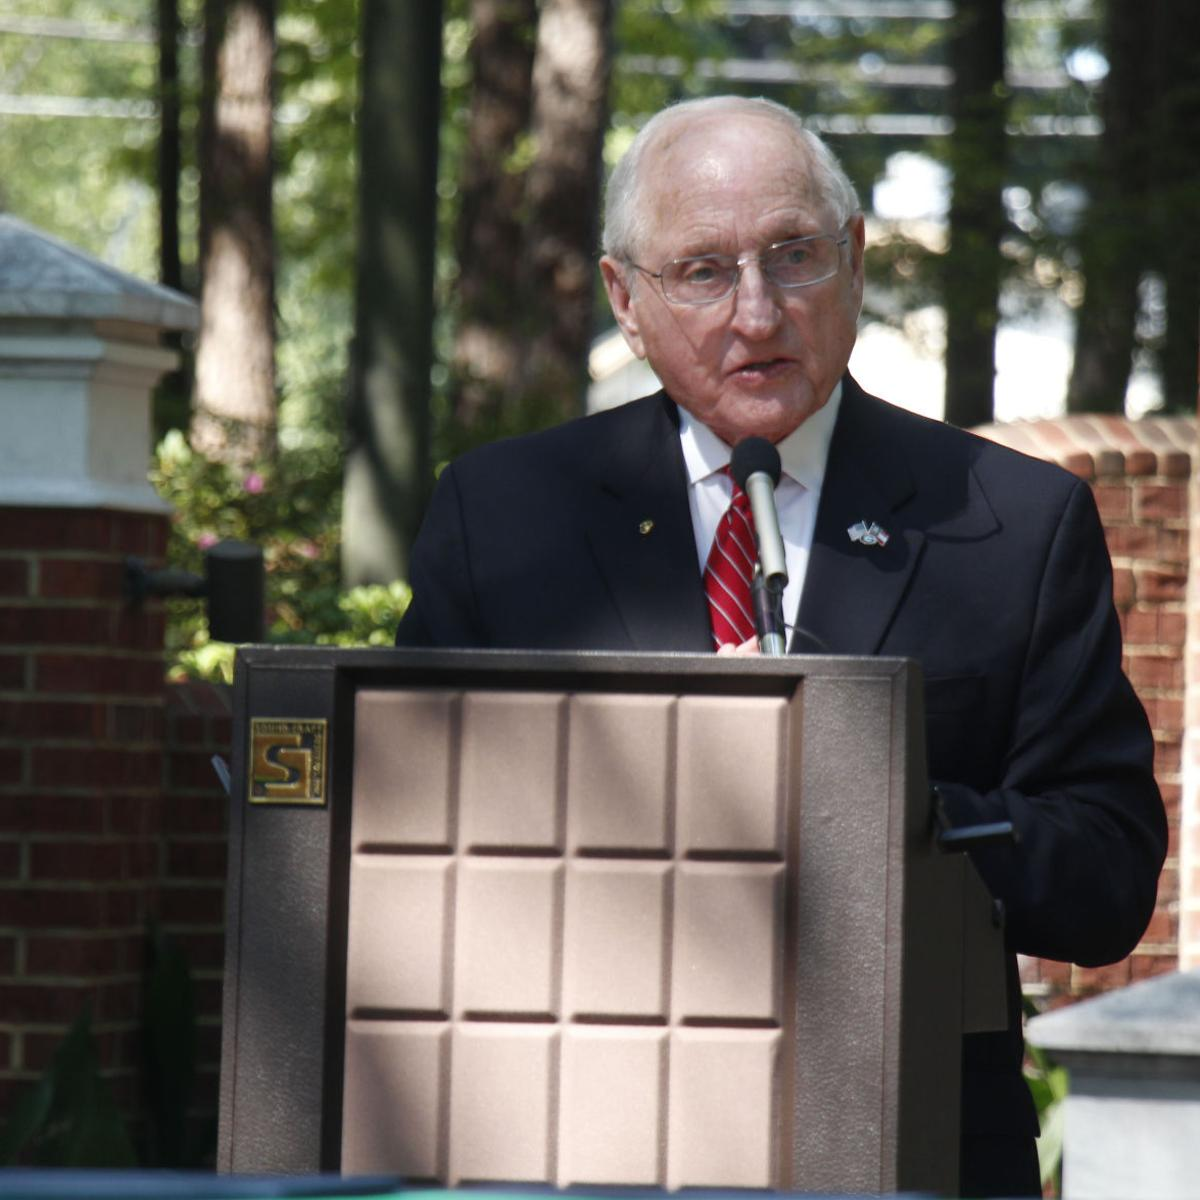 Former Georgia Bulldogs Coach Vince Dooley Speaks At Roswell Event